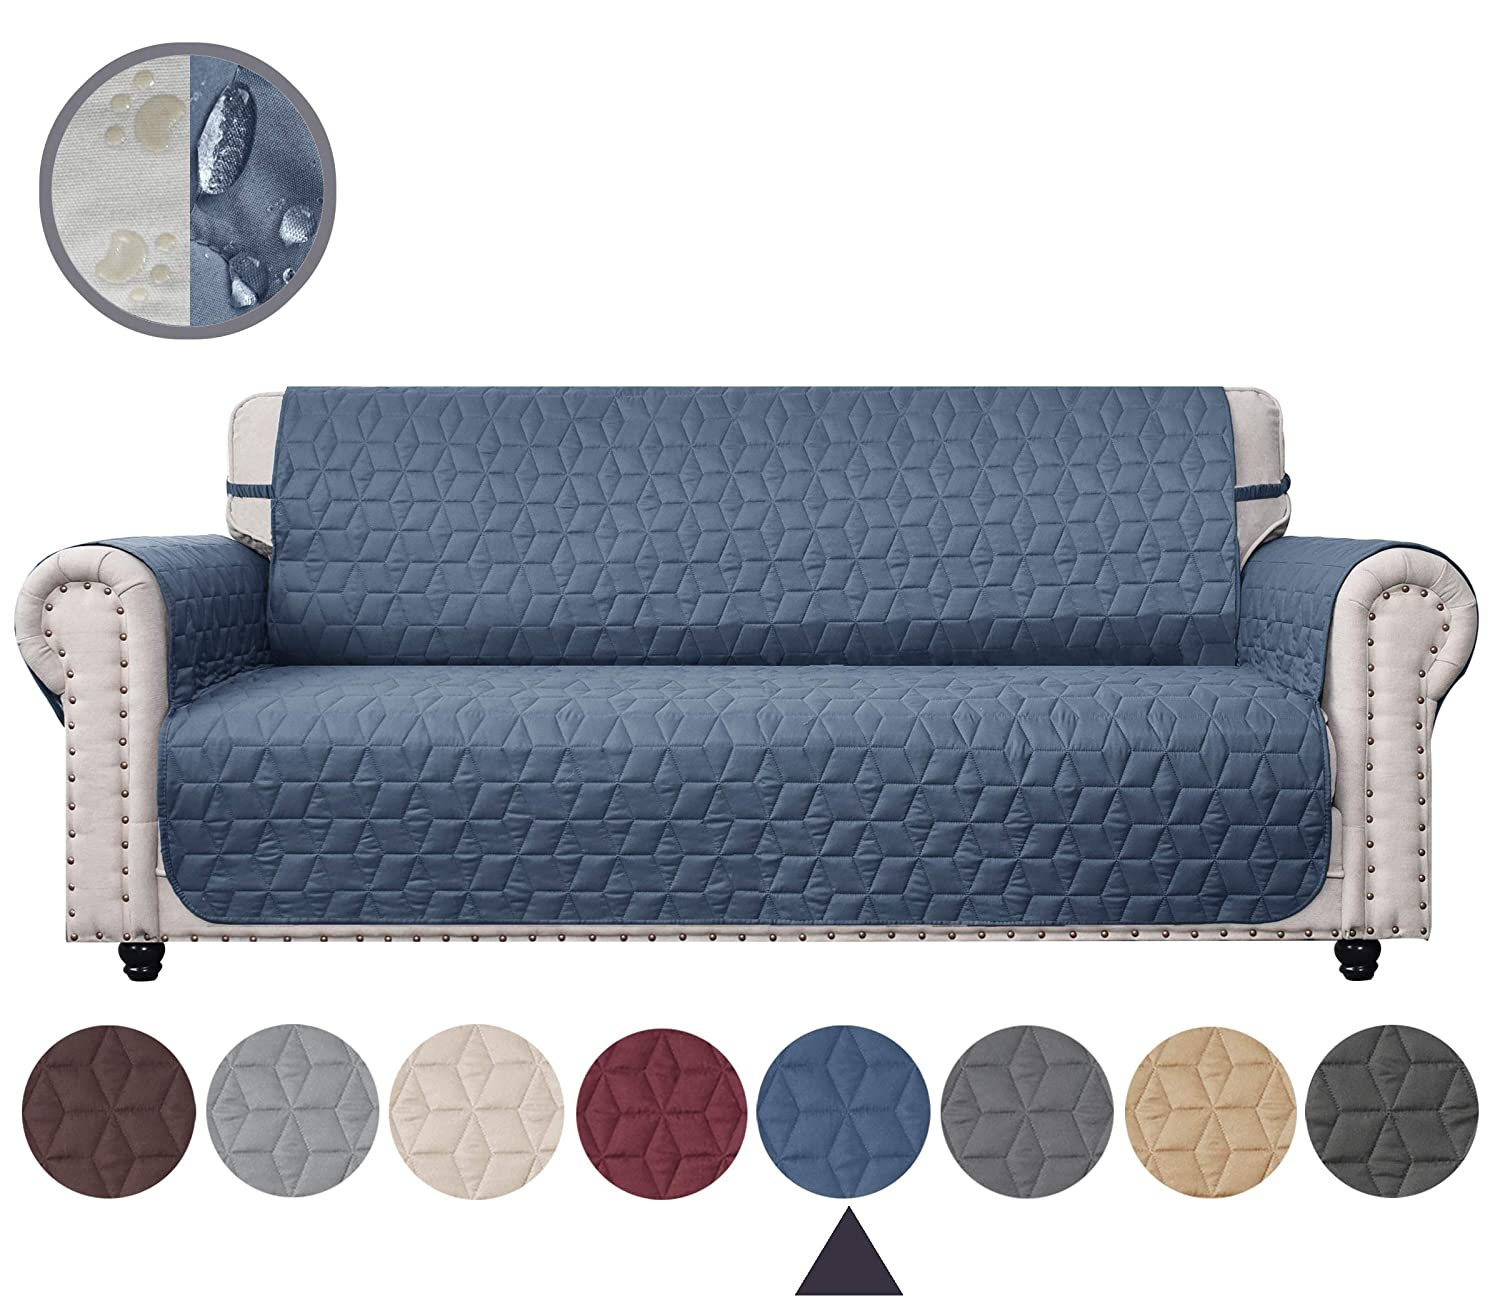 Pleasing Ameritex Couch Cover With Anti Skip Dog Paw Print 100 Water Resistant Quilted Furniture Protector Slipcover For Dogs Children Pets Sofa Slipcover Andrewgaddart Wooden Chair Designs For Living Room Andrewgaddartcom